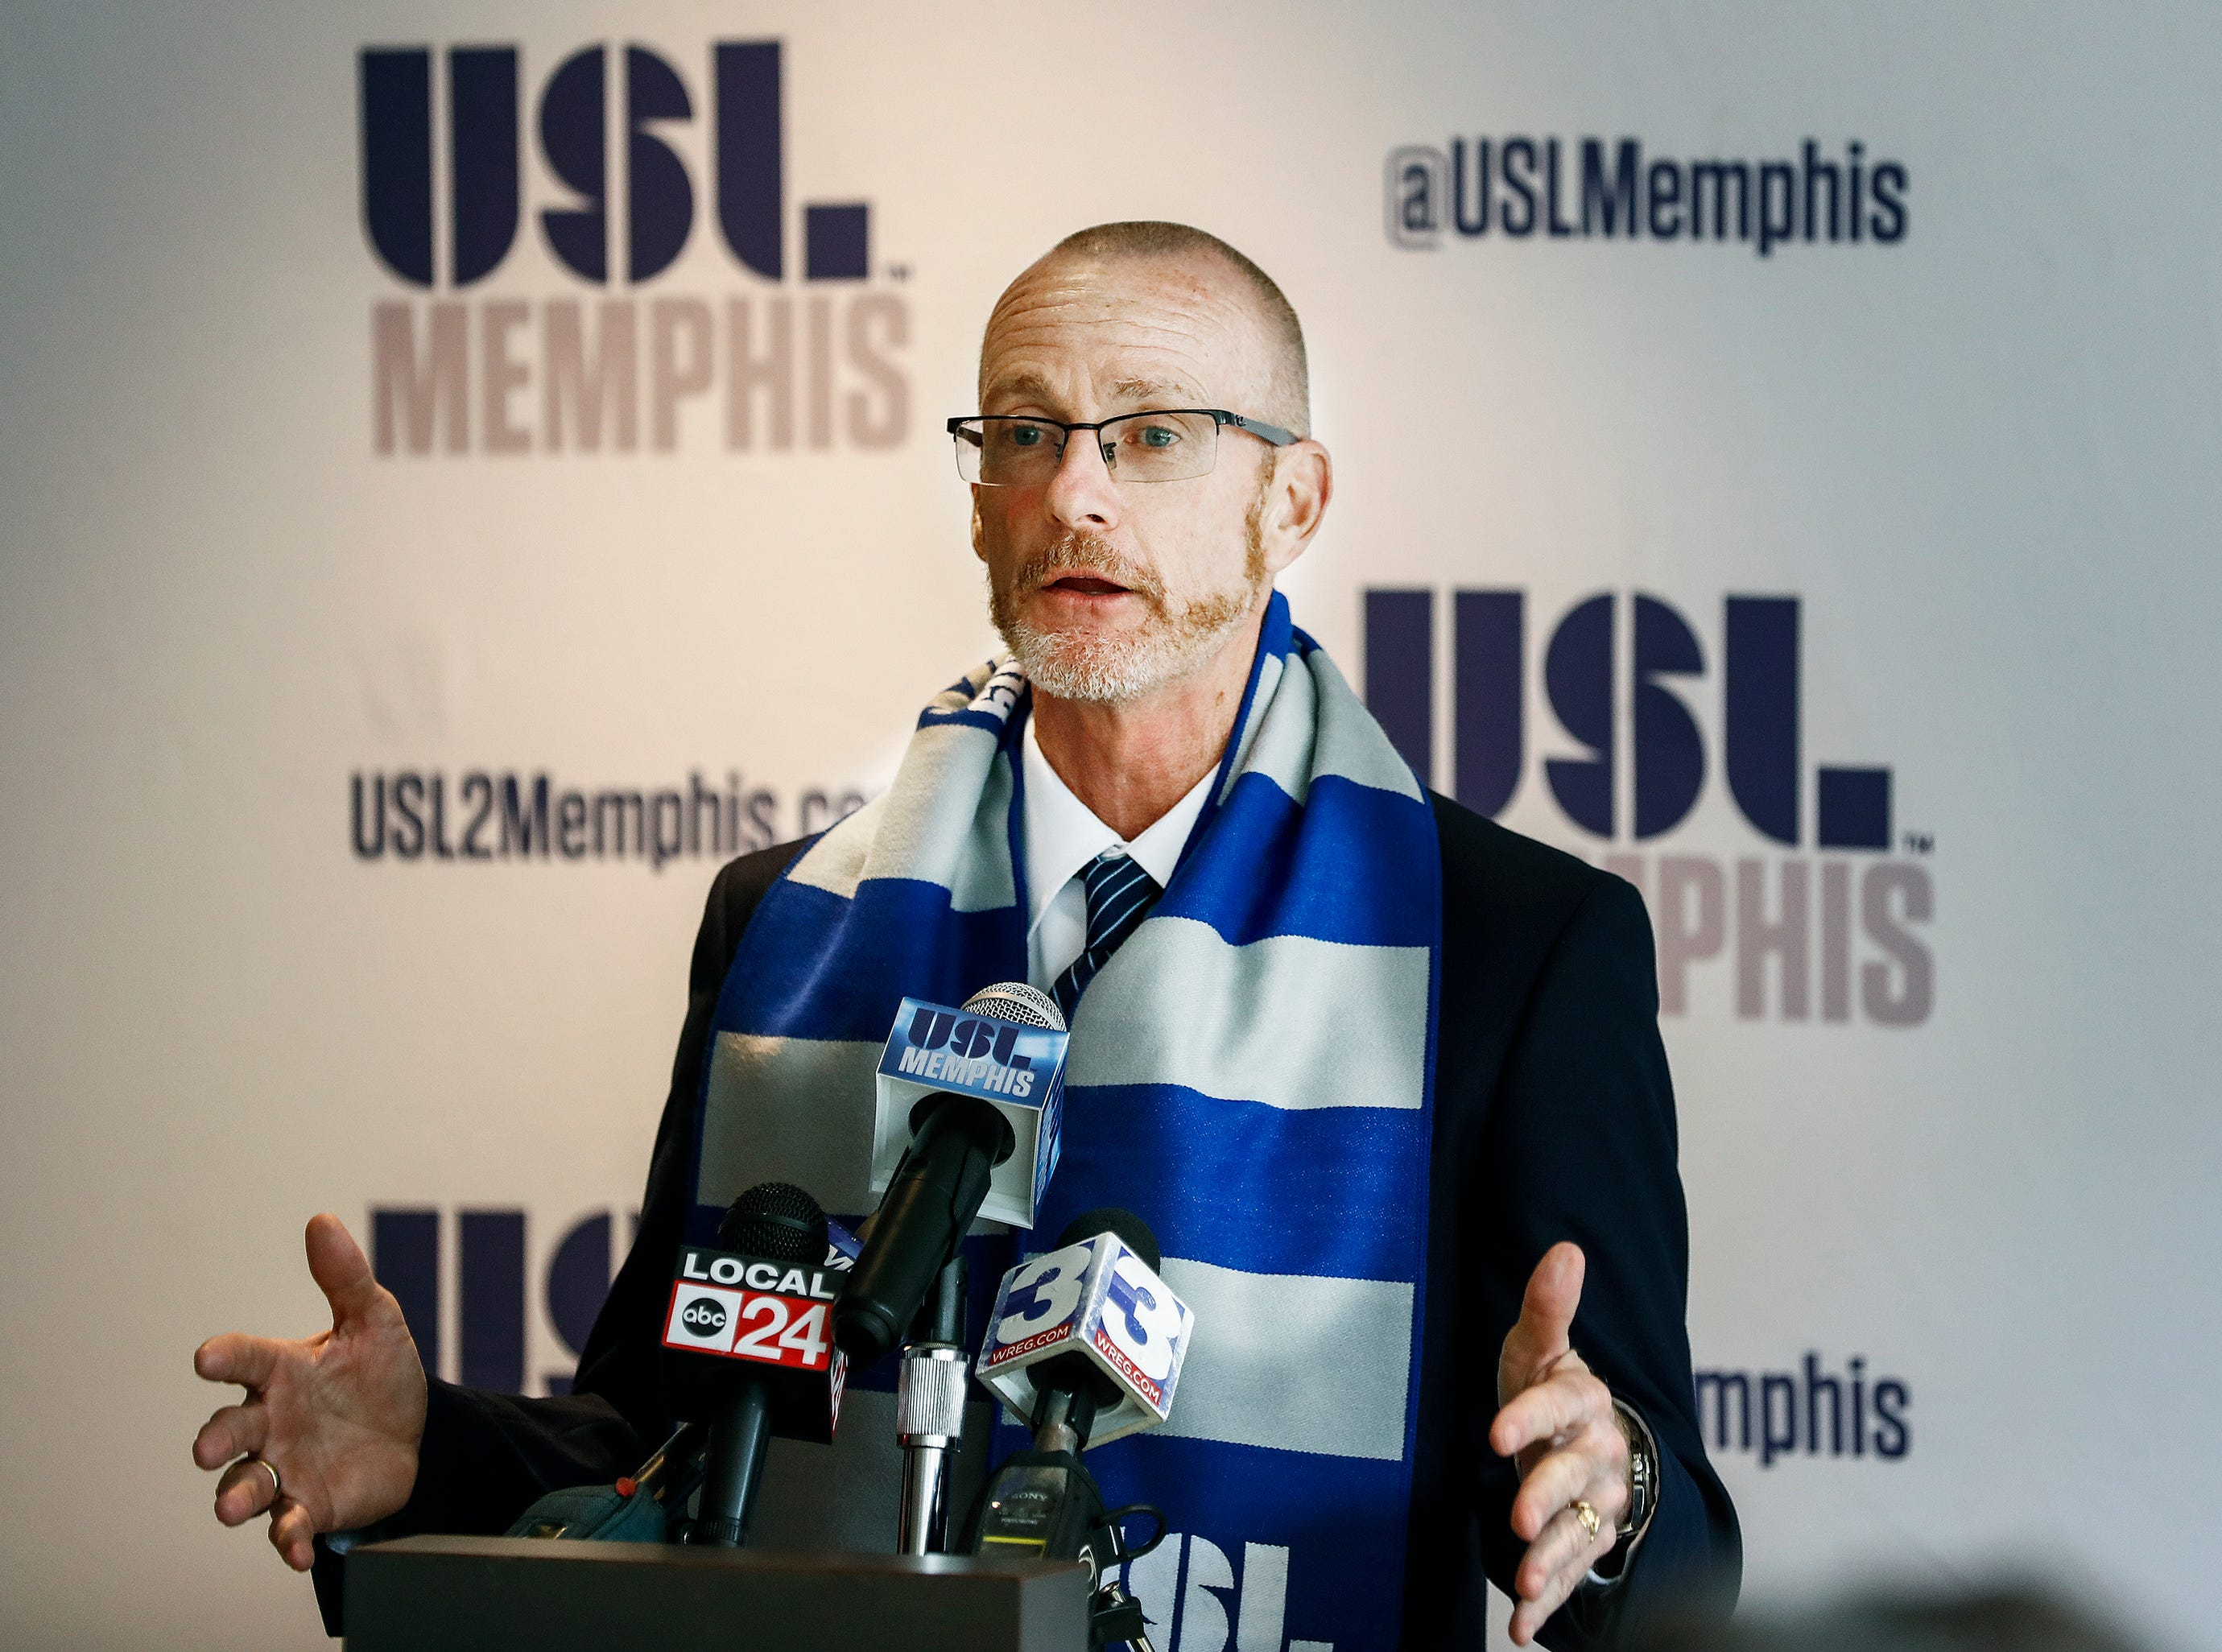 Tim Mulqueen is announced as USL Memphis first head coach during a press conference at AutoZone Park.